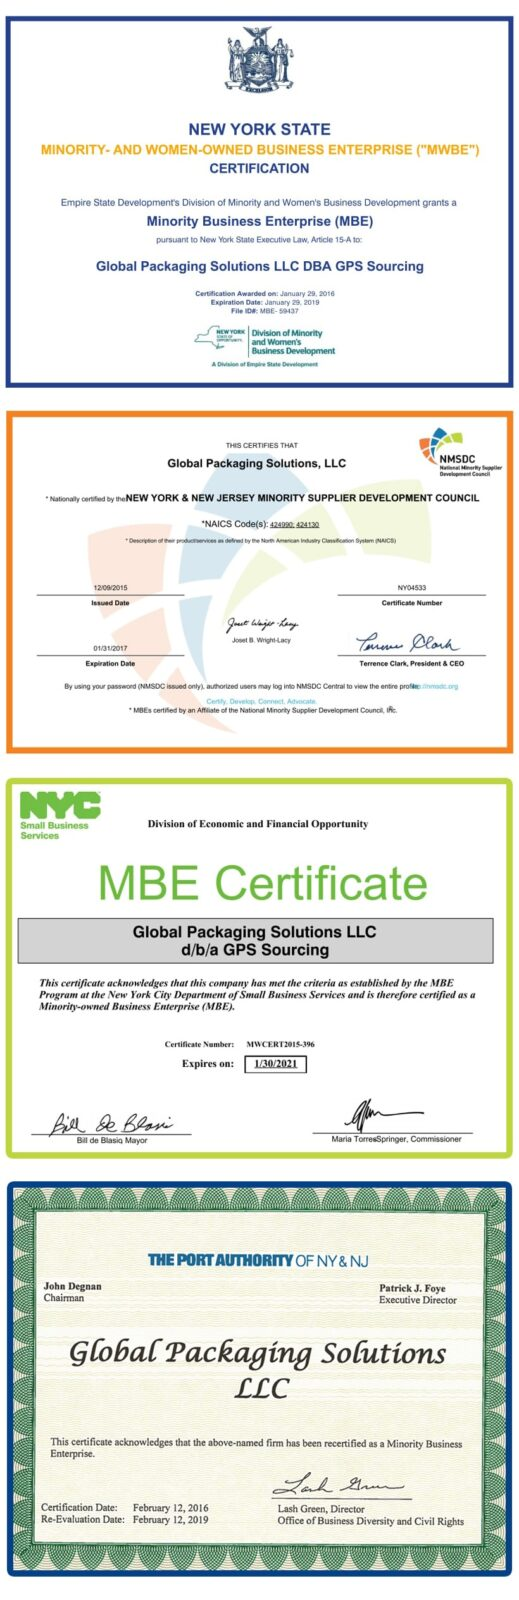 New York and New Jersey Minority Supplier Development Council Certificates